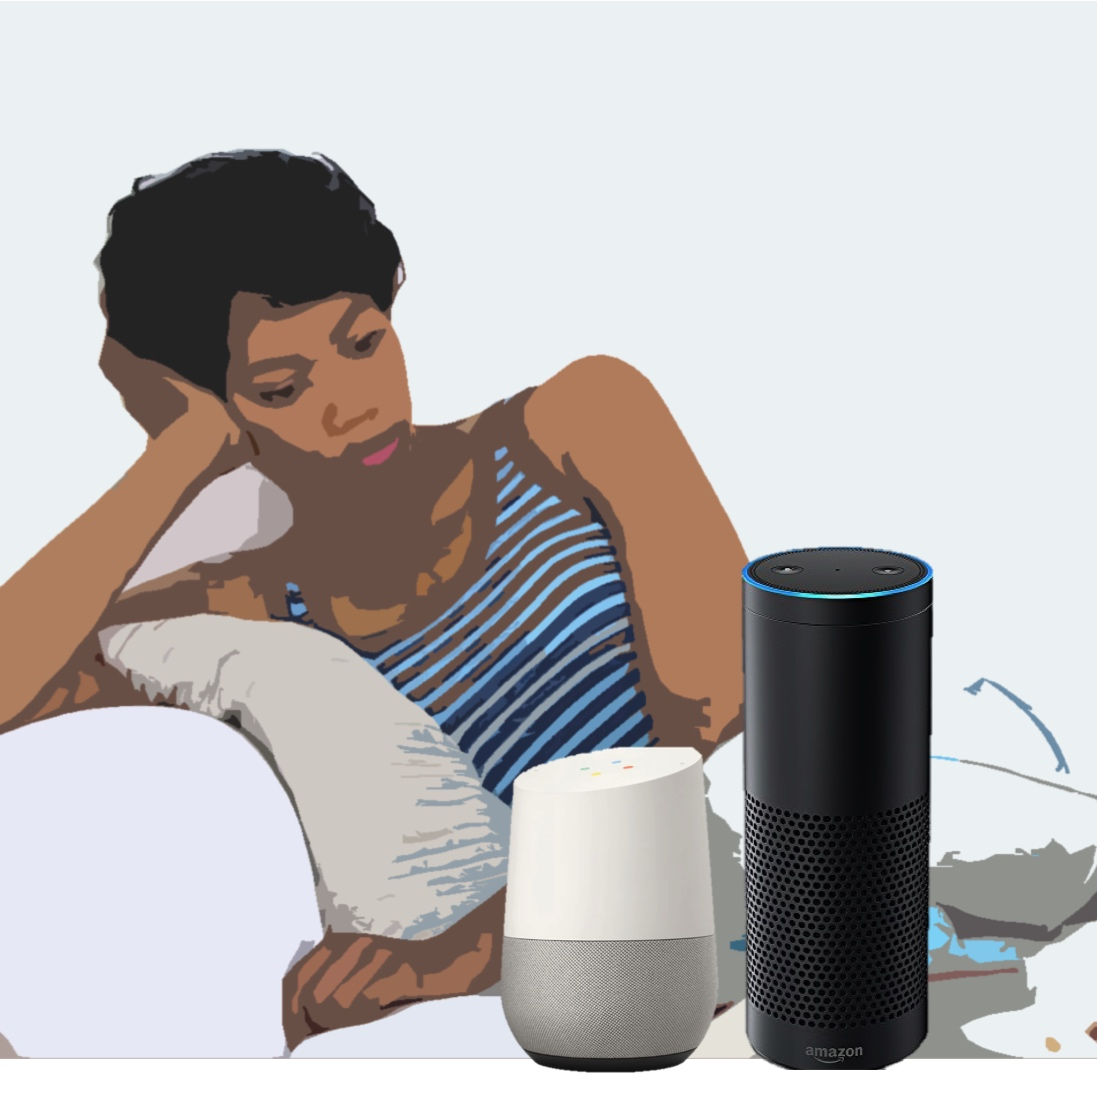 Amazon echo and Google home in use by a woman lounging on a couch